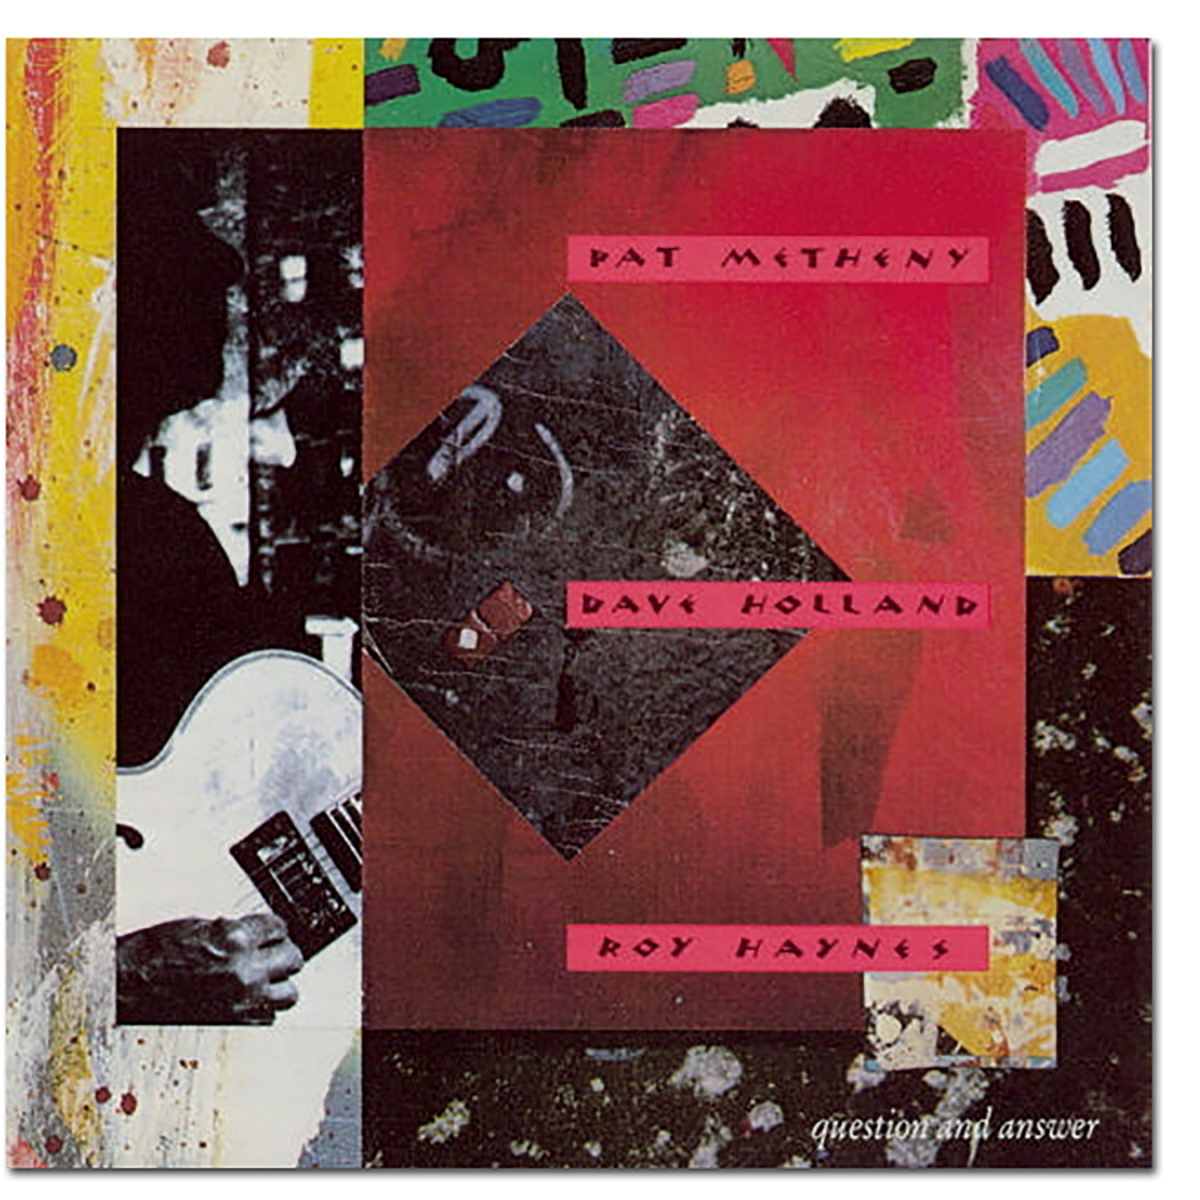 Pat Metheny - Question & Answer CD